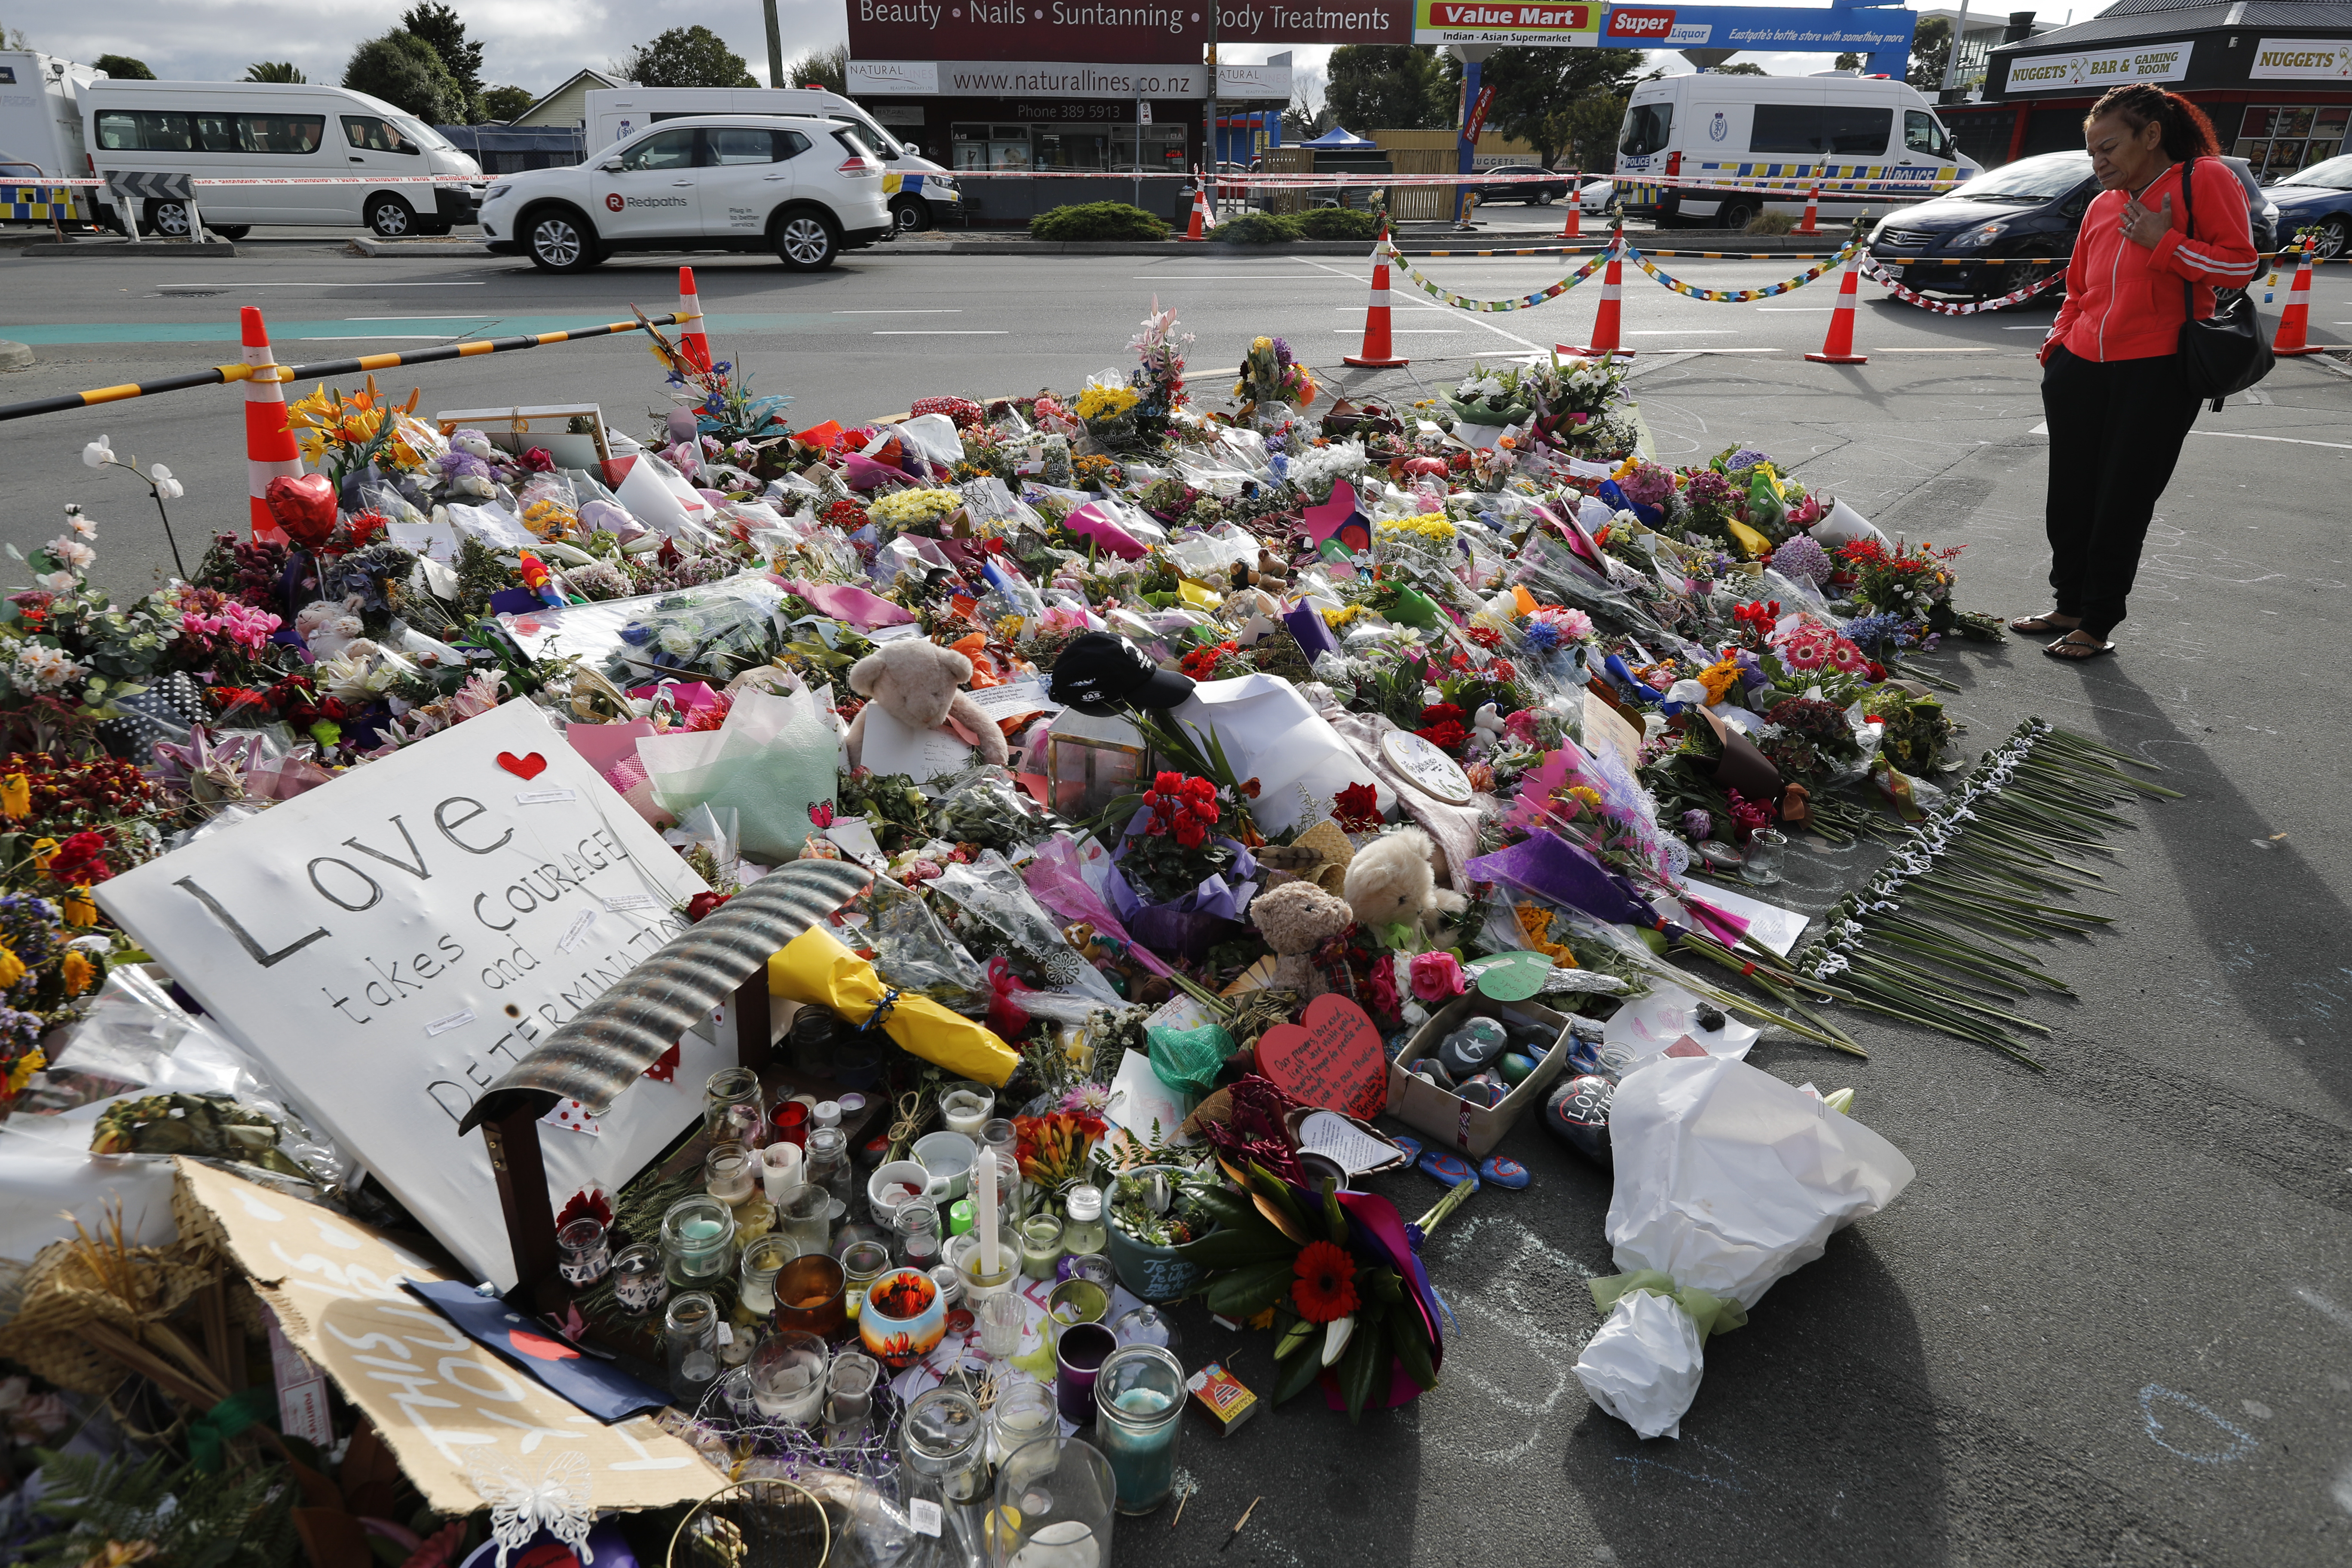 A woman looks at the floral tribute near the Linwood mosque in Christchurch, New Zealand, Thursday, March 21, 2019. Police officials in New Zealand say the man responsible for killing 50 people at two mosques was on his way to a third attack when police arrested him. (AP Photo/Vincent Thian)